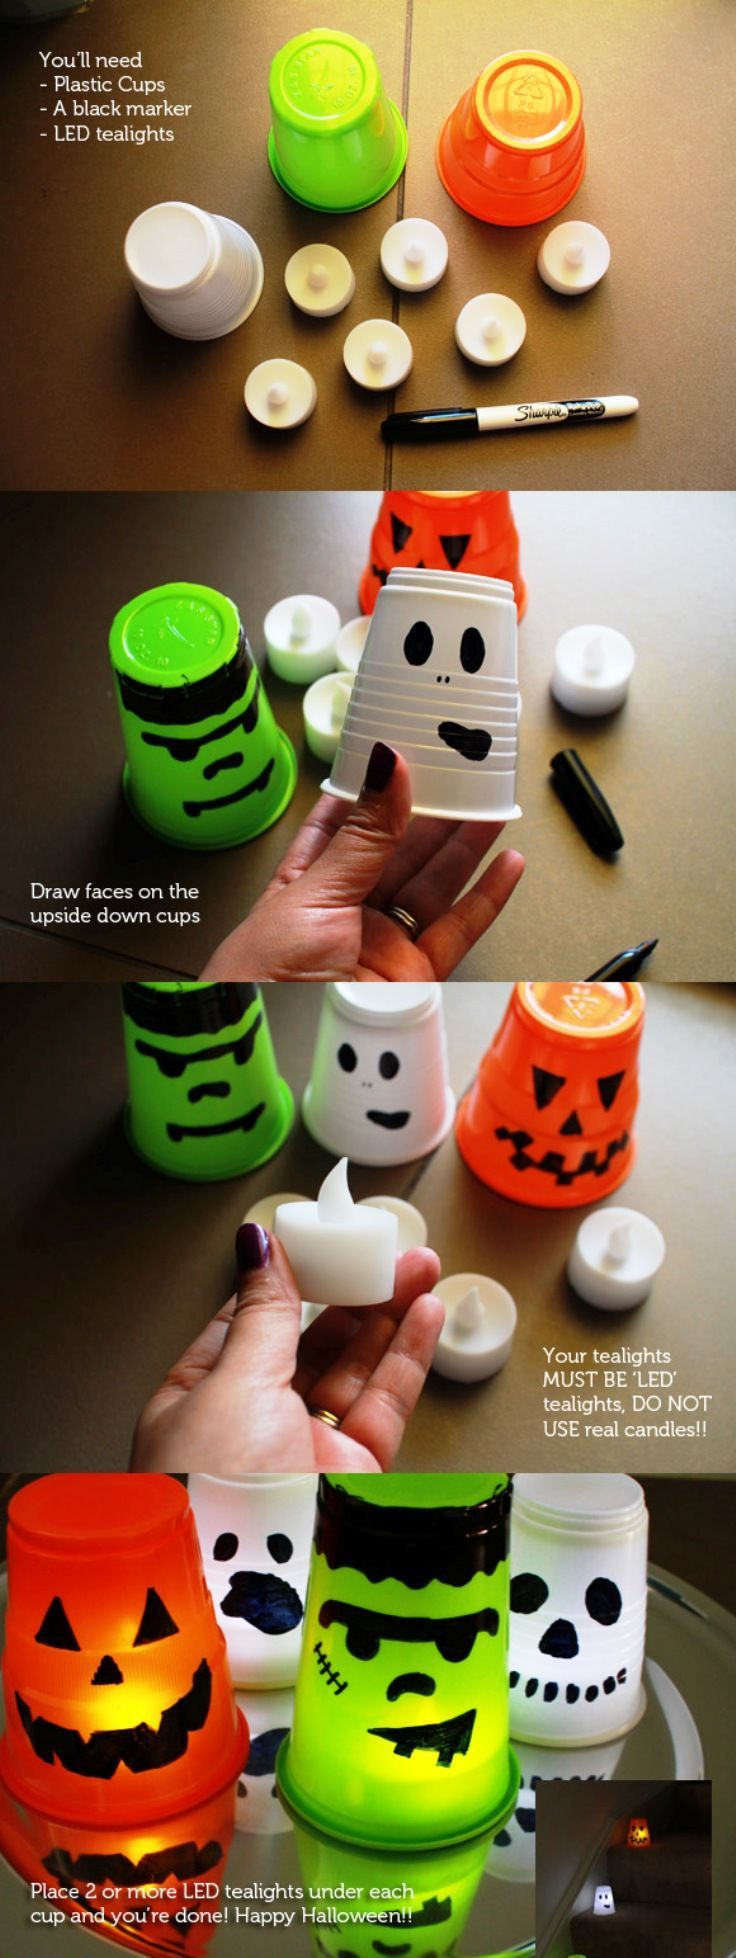 Top 10 Best DIY Halloween Projects...cute, easy ideas for young kids at Halloween.